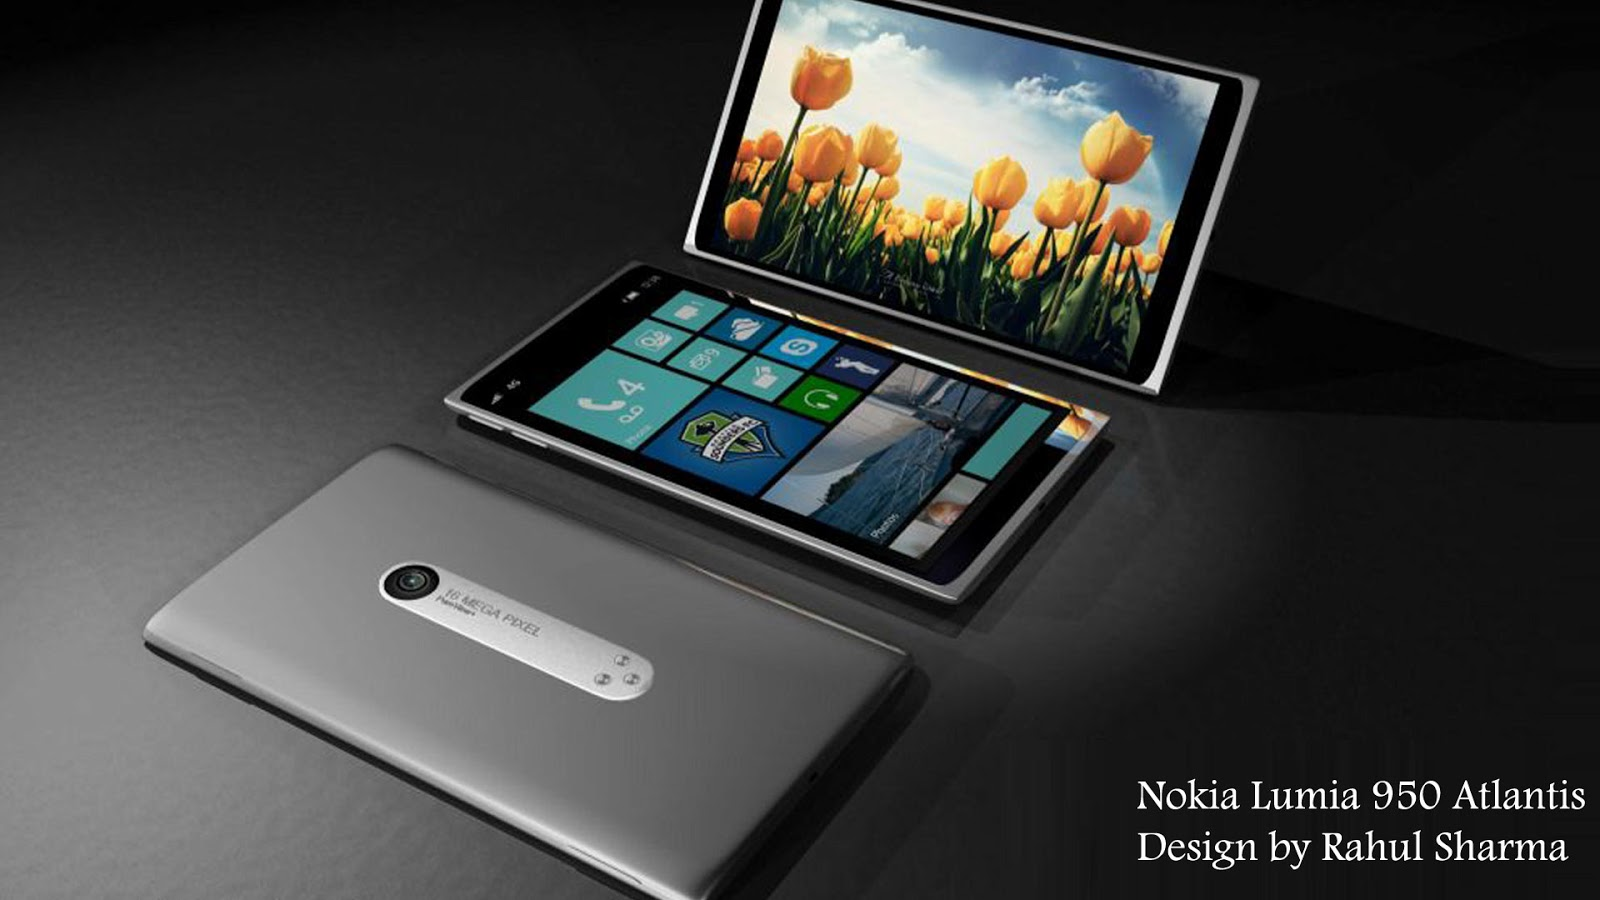 Awesome hd wallpapers nokia lumia 920 wallpapers hd for Amazing wallpapers for nokia